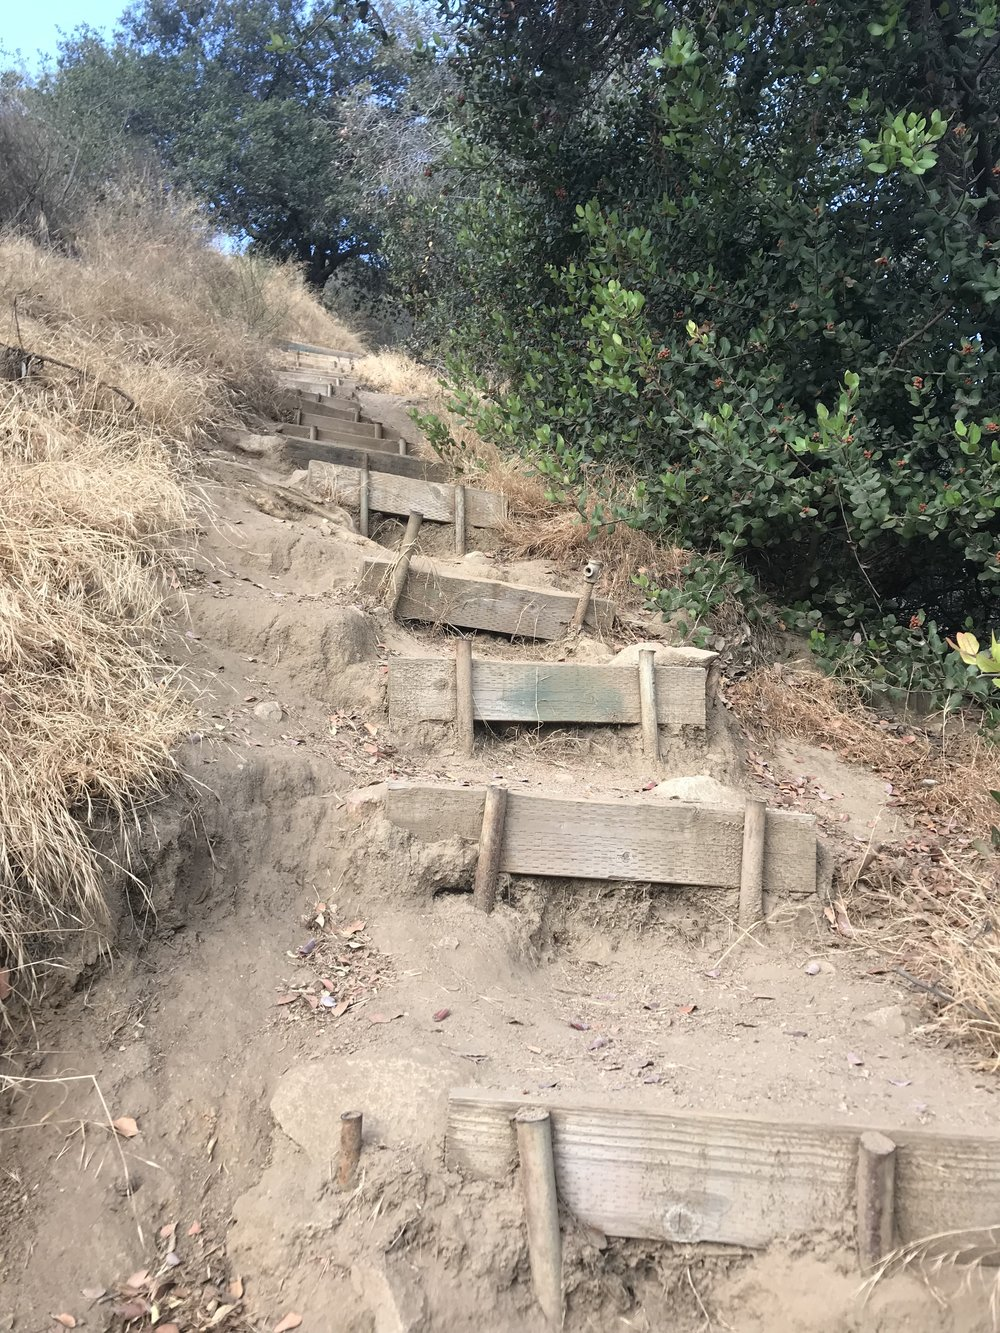 Be Aware - We will be climbing up very steep steps for about 1/4 mile.